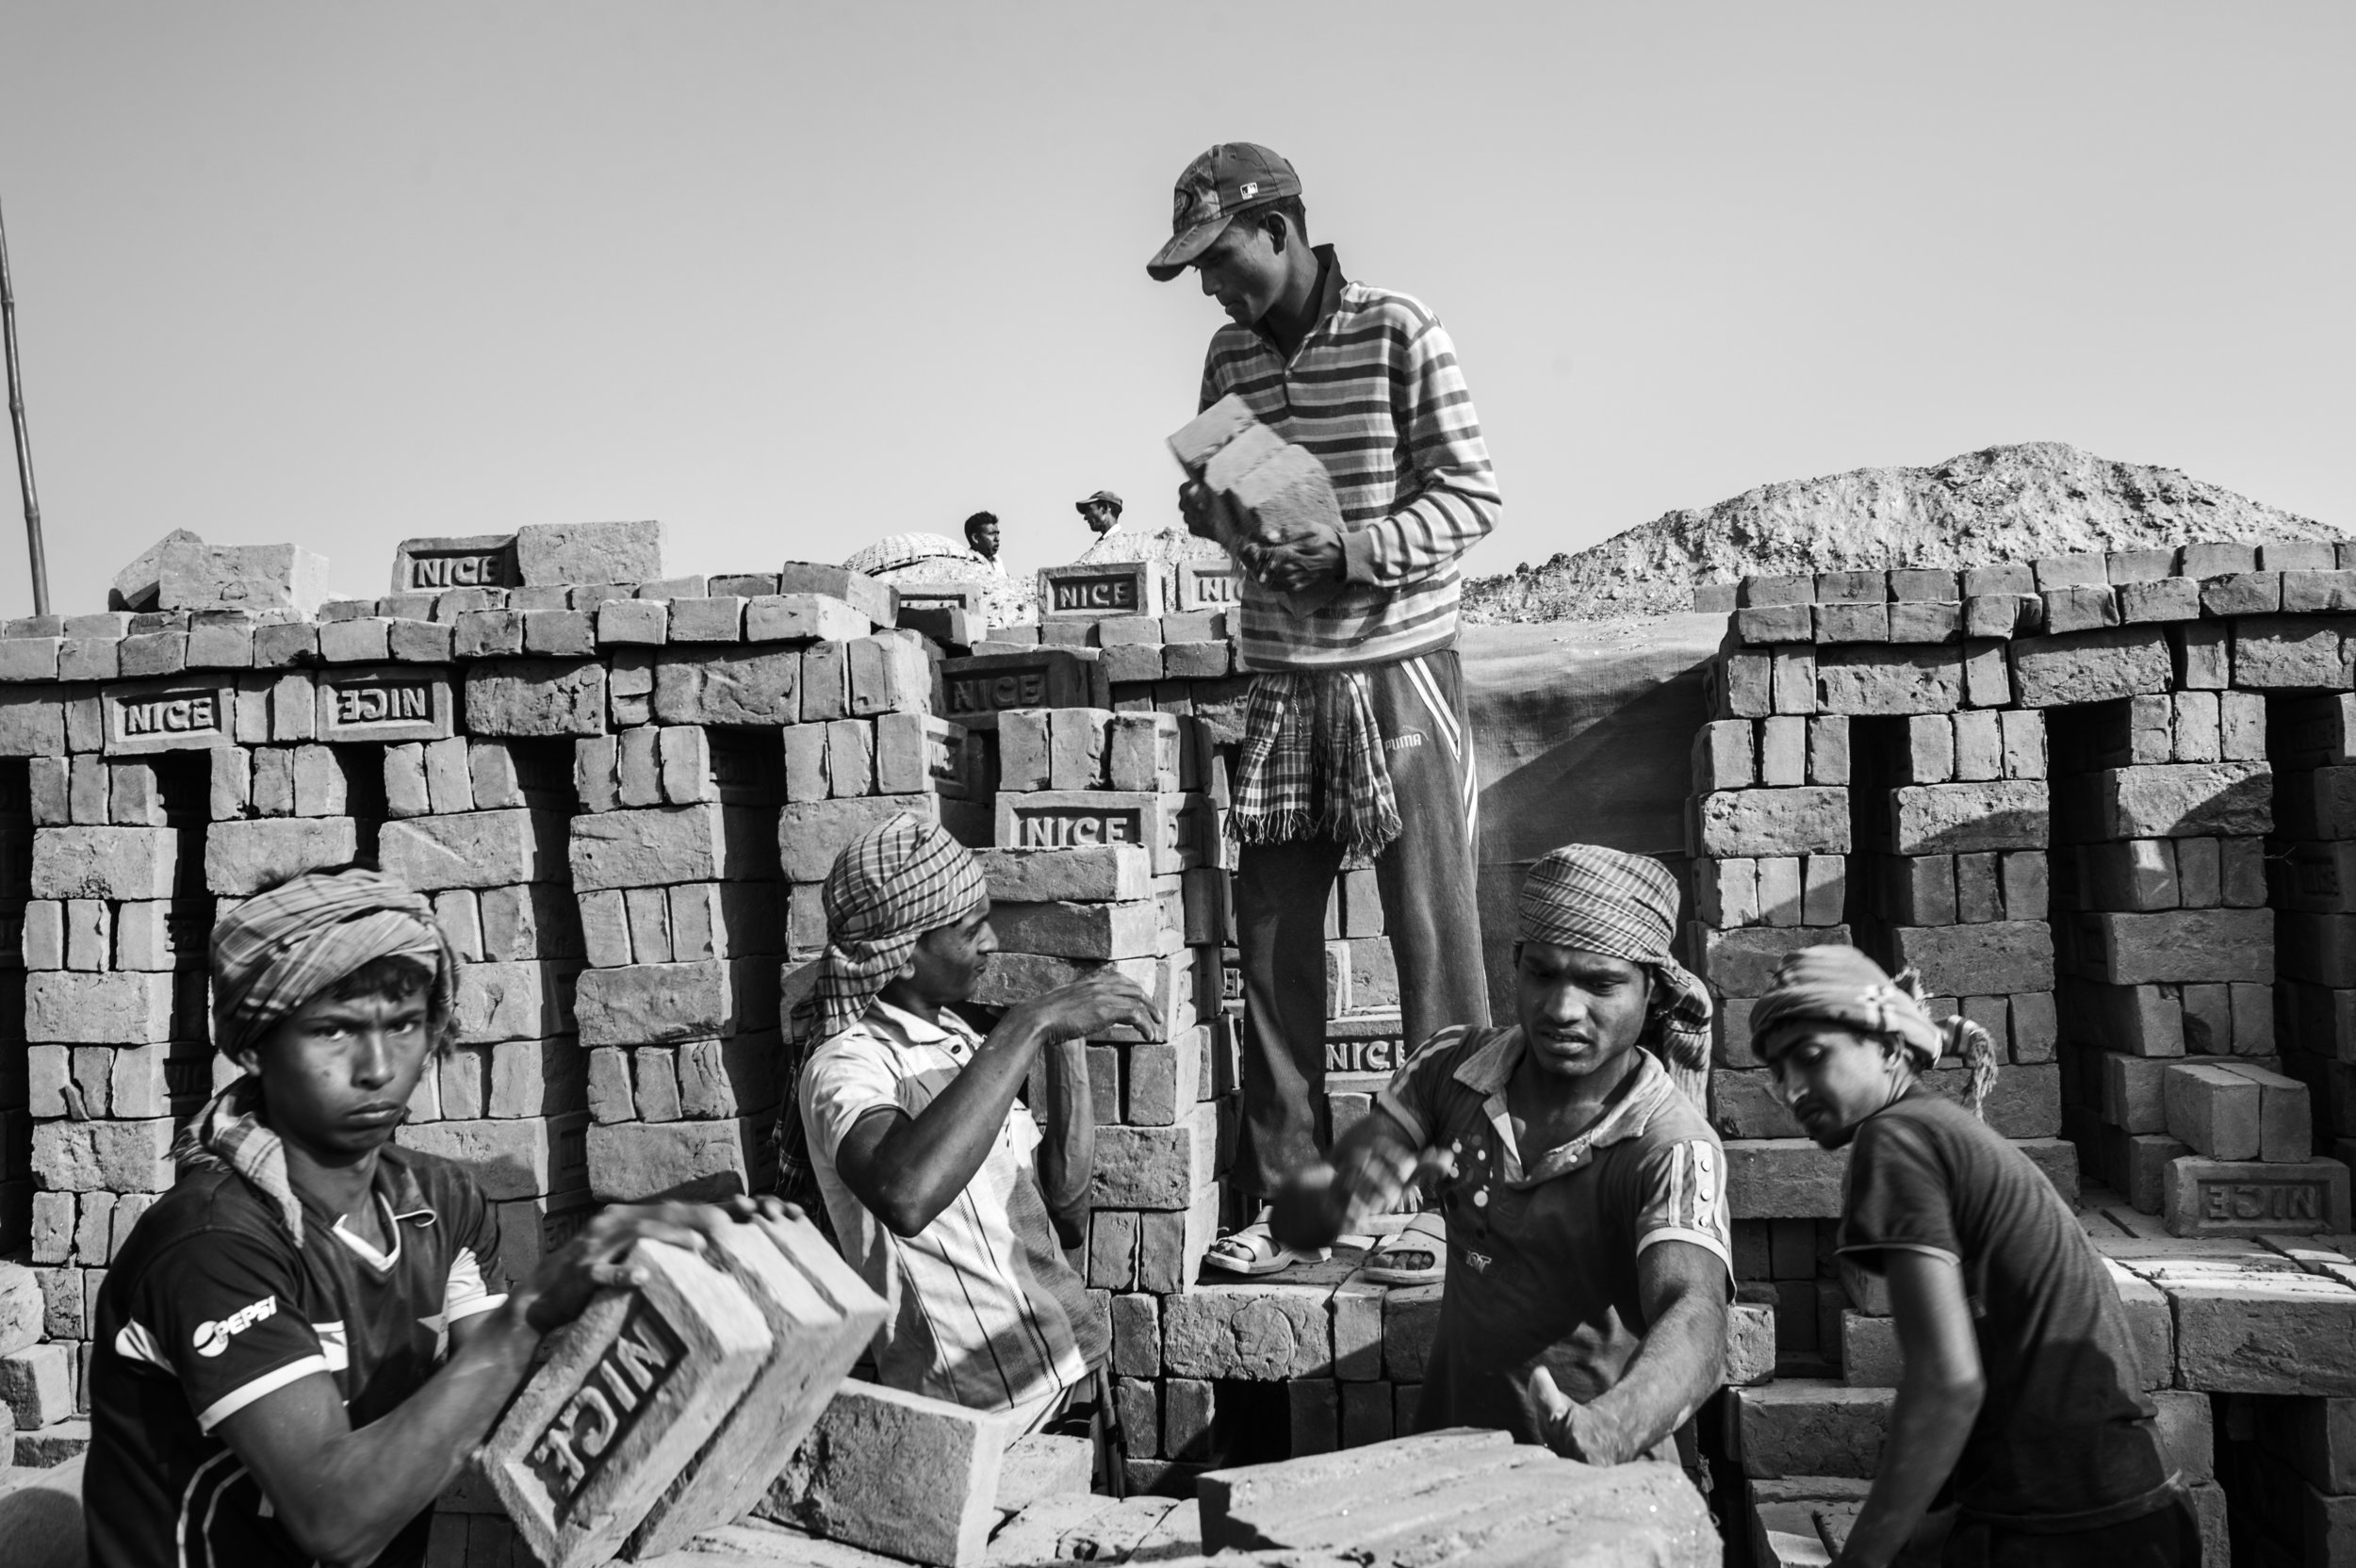 """Bangladesh, Rajshahi, January 2013, Children working with adults at """"Nice"""" brick factory. Their work is to stack bricks: for every 1000 bricks stacked, they get 20 Taka."""